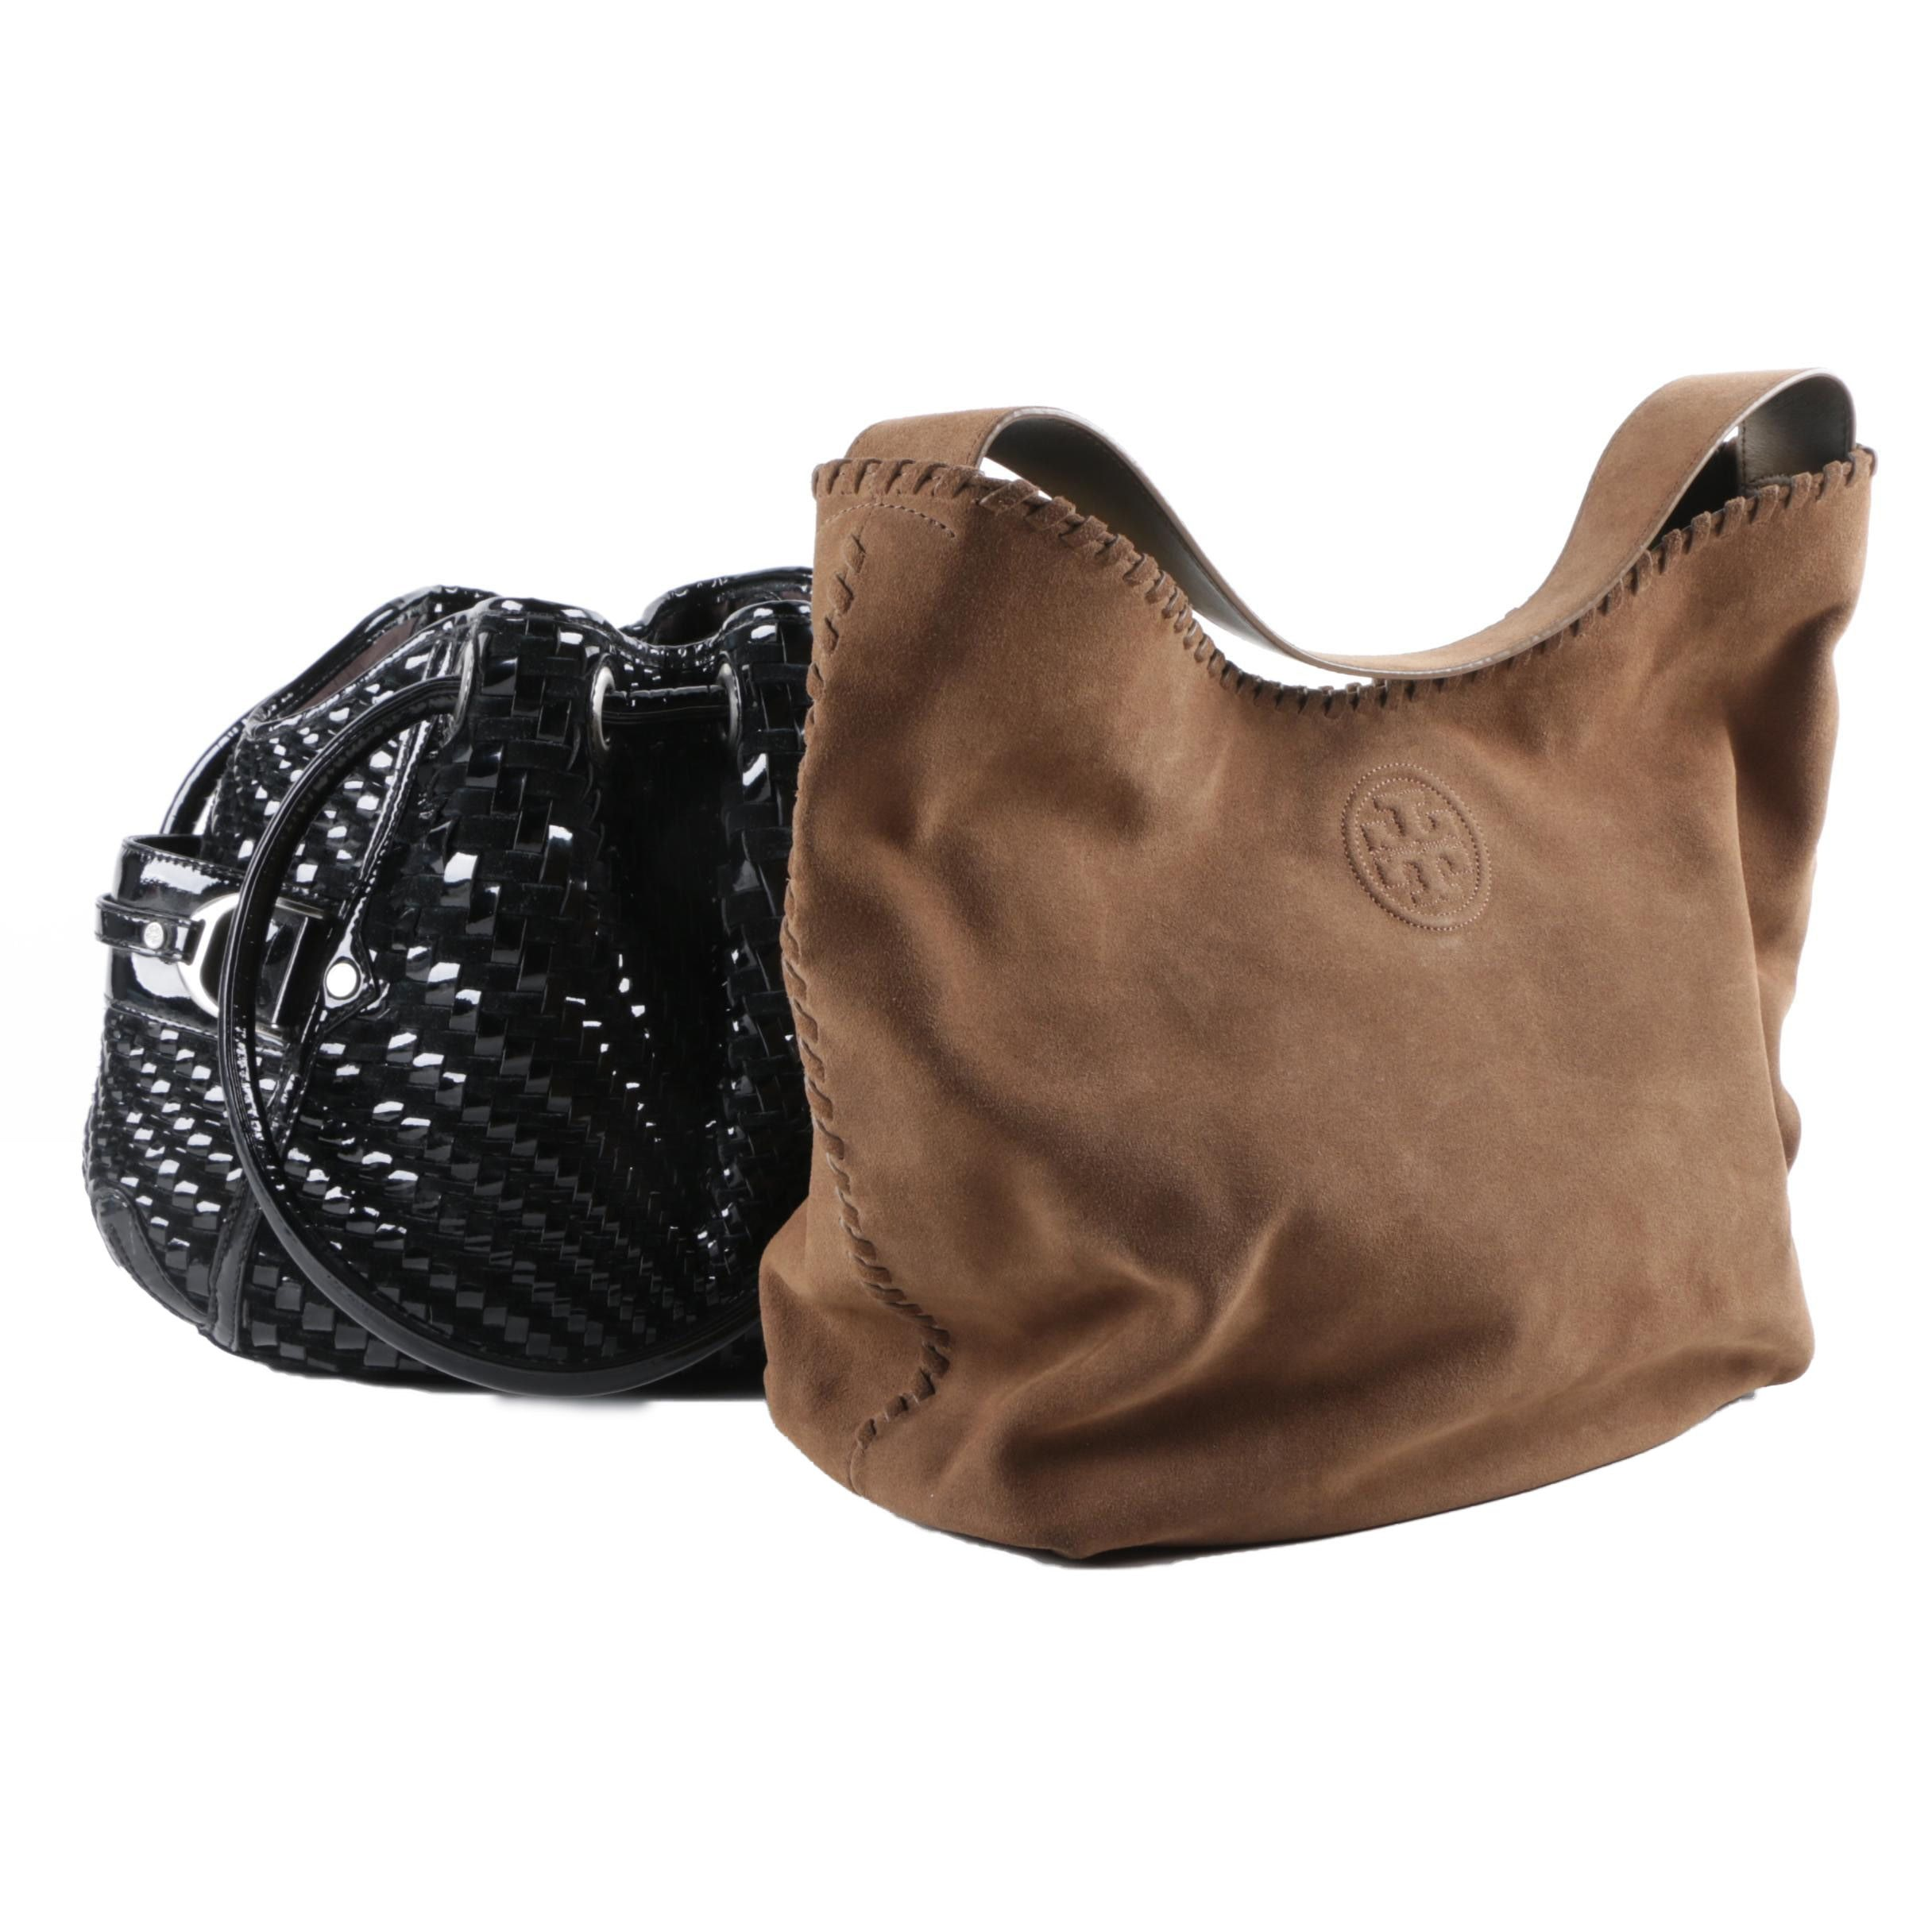 Tory Burch Brown Suede and Cole Haan Black Patent Leather and Suede Hobo Bags